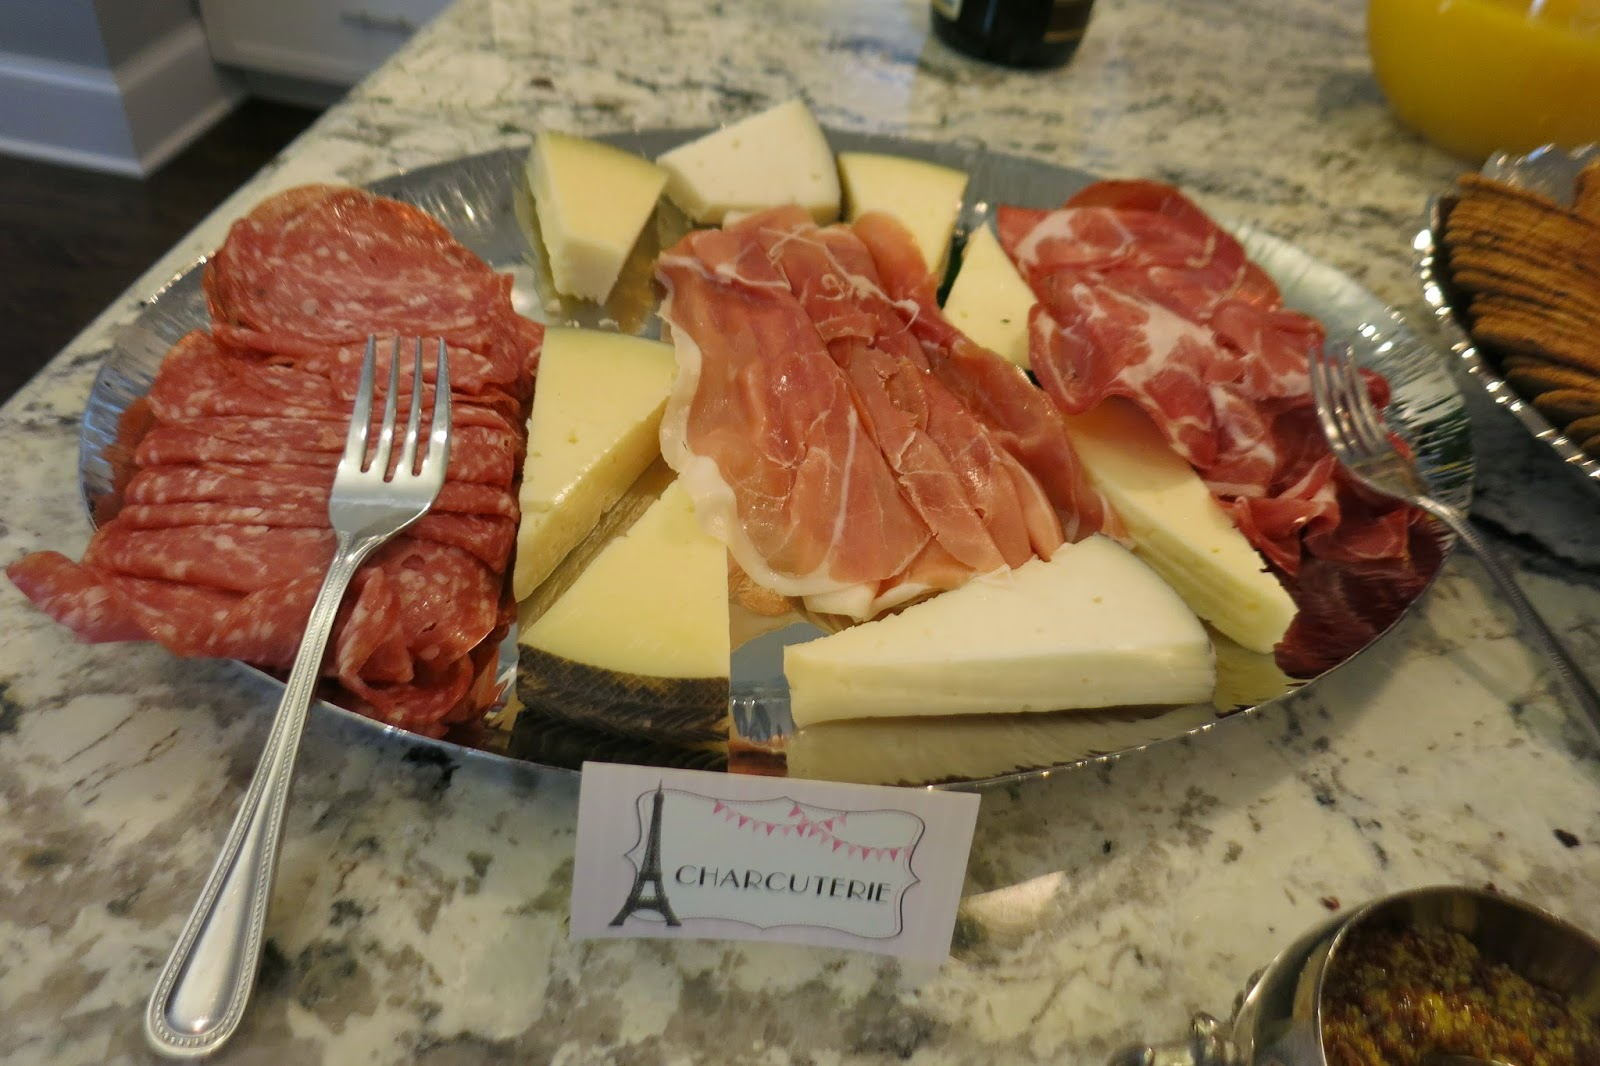 Paris-Themed Birthday Party: Charcuterie Platter